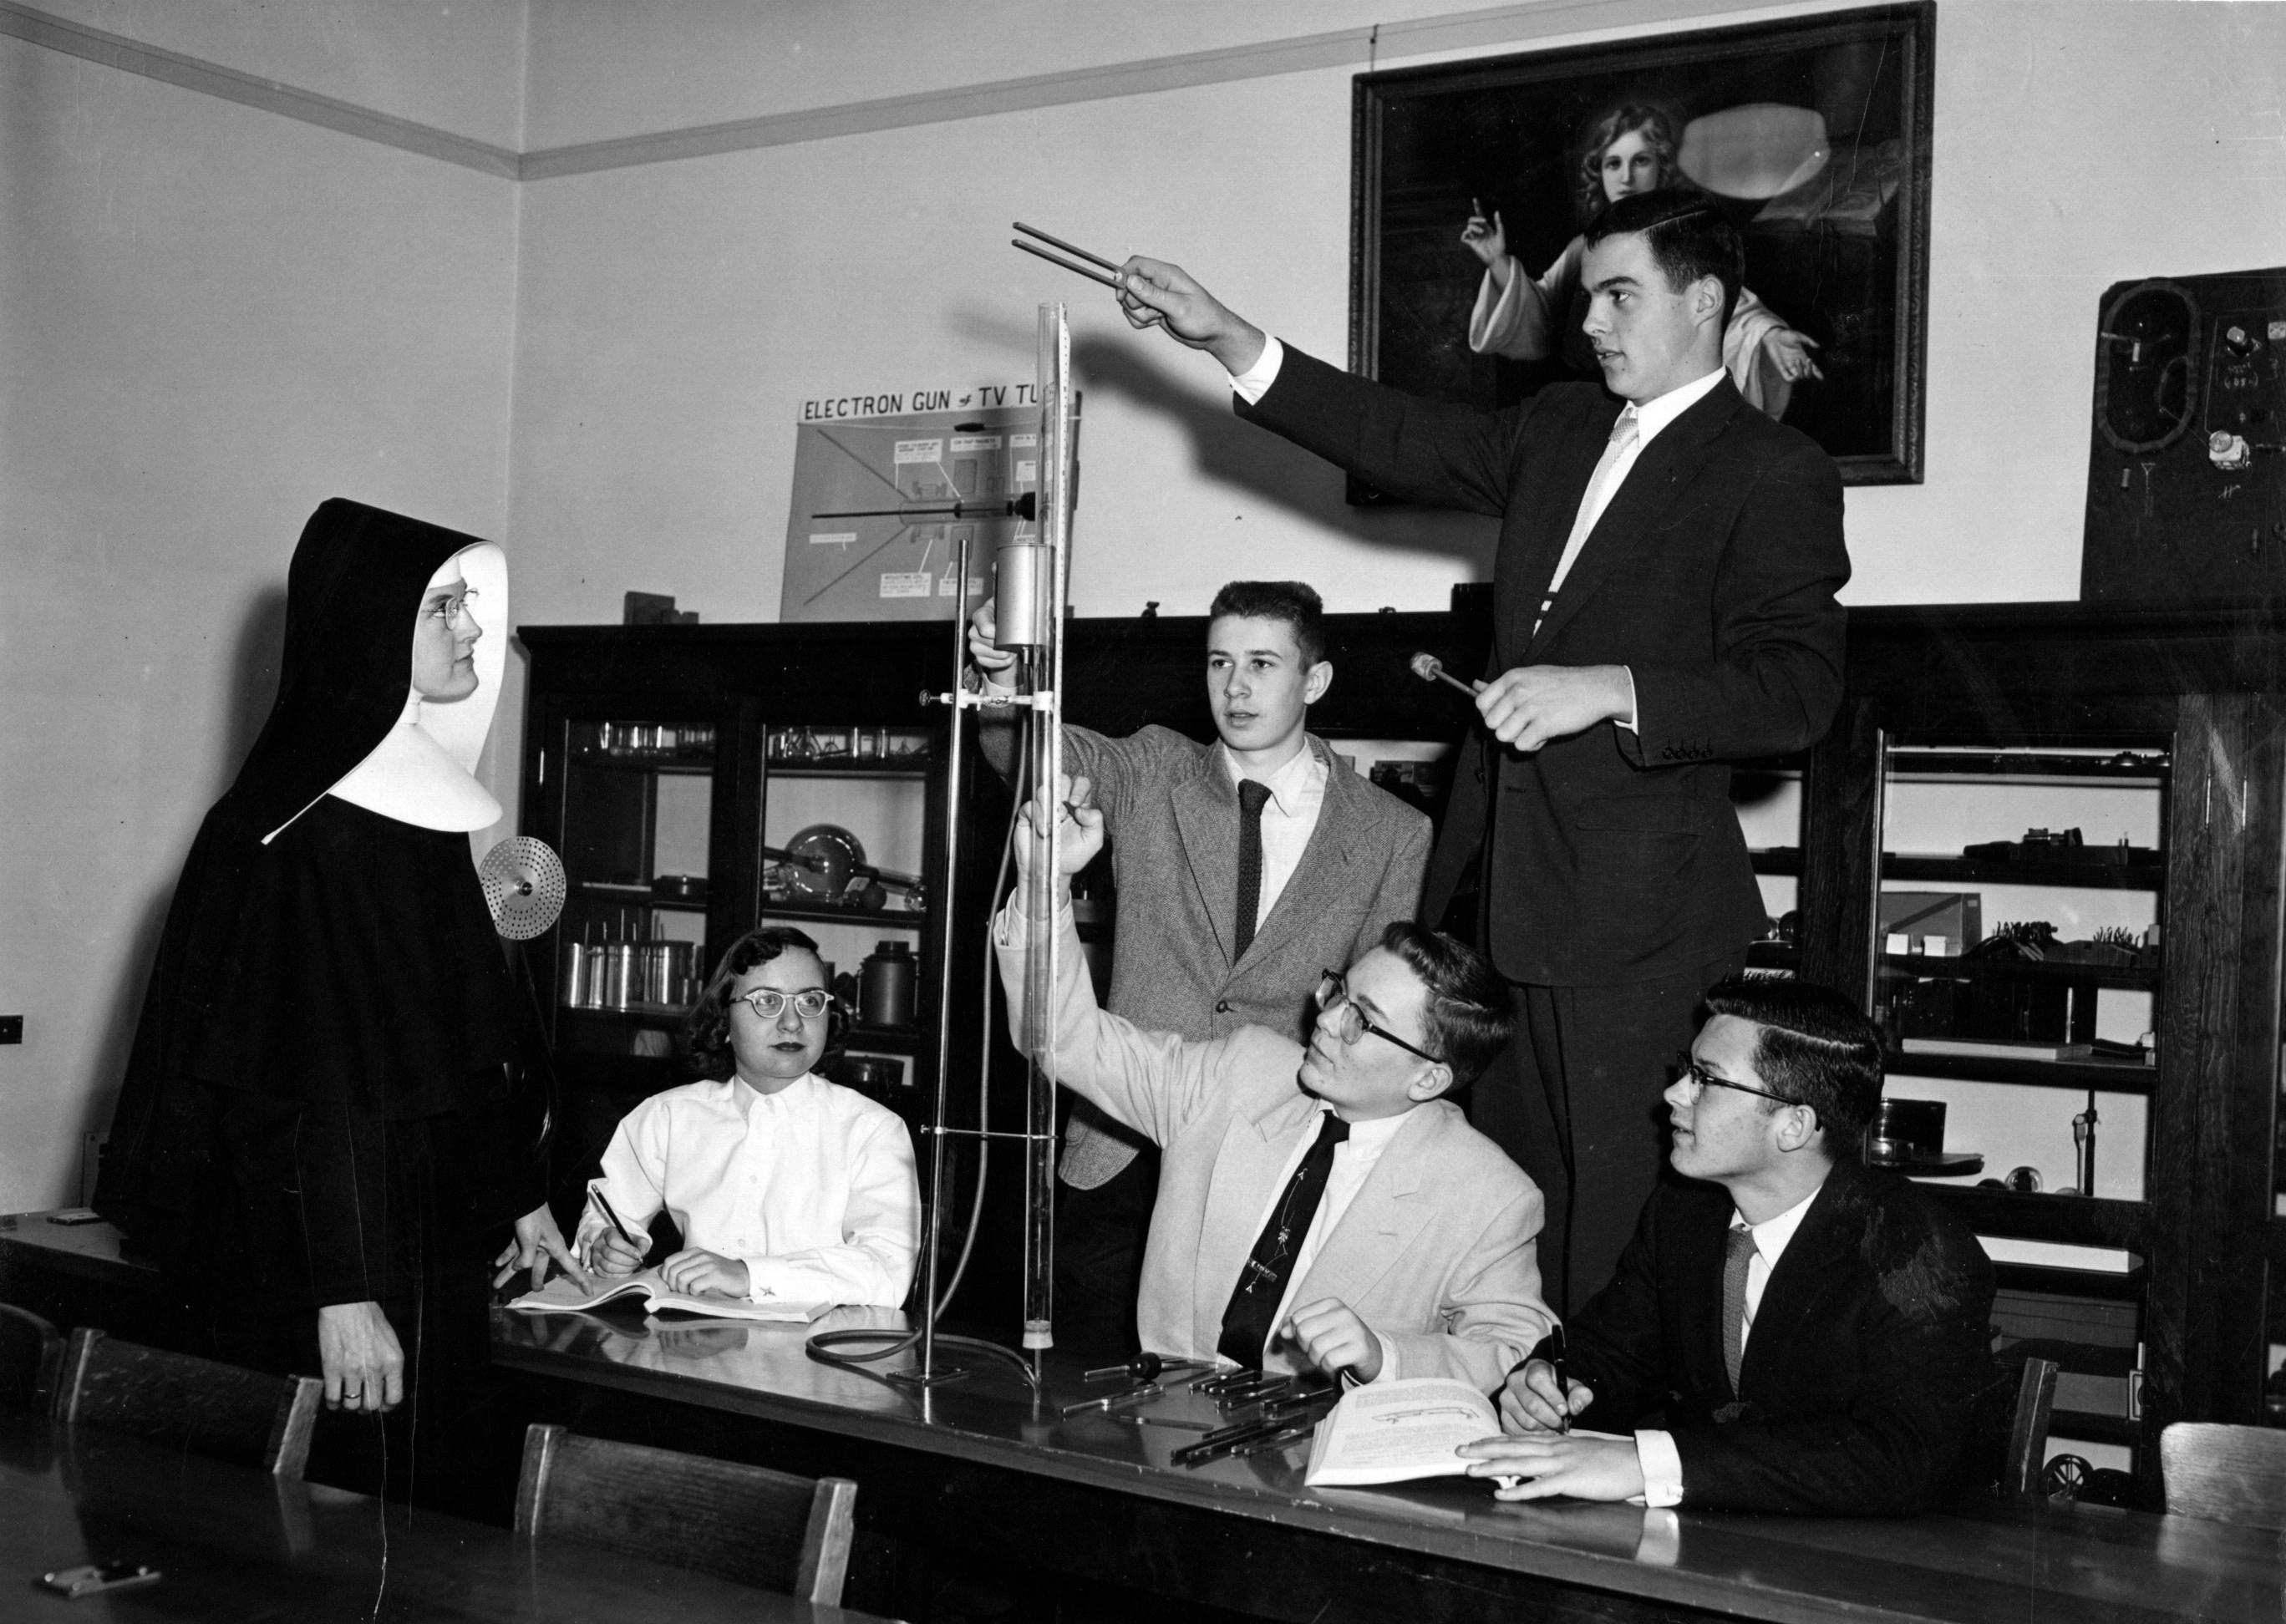 Sister Michaela O'Brien teaches a physics class at St. Mary's Springs Academy in the 1950s.